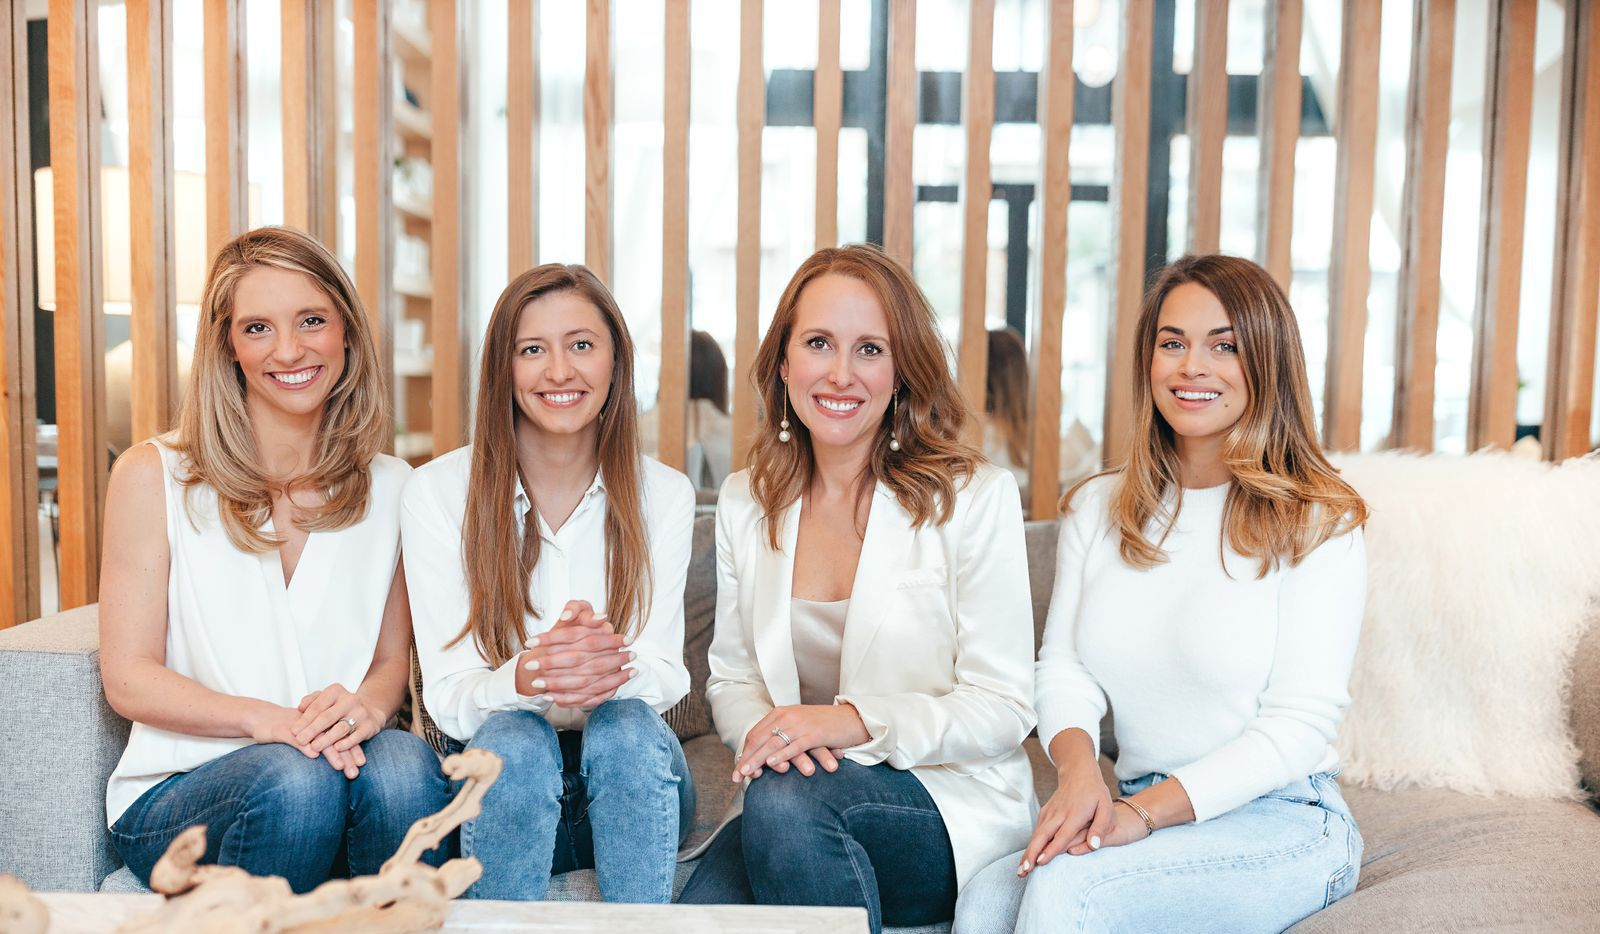 Dr. Lyndsey Harper (center right), a Dallas-based OB/GYN, mom to three, and founder and CEO of sexual wellness app Rosy, alongside her team.